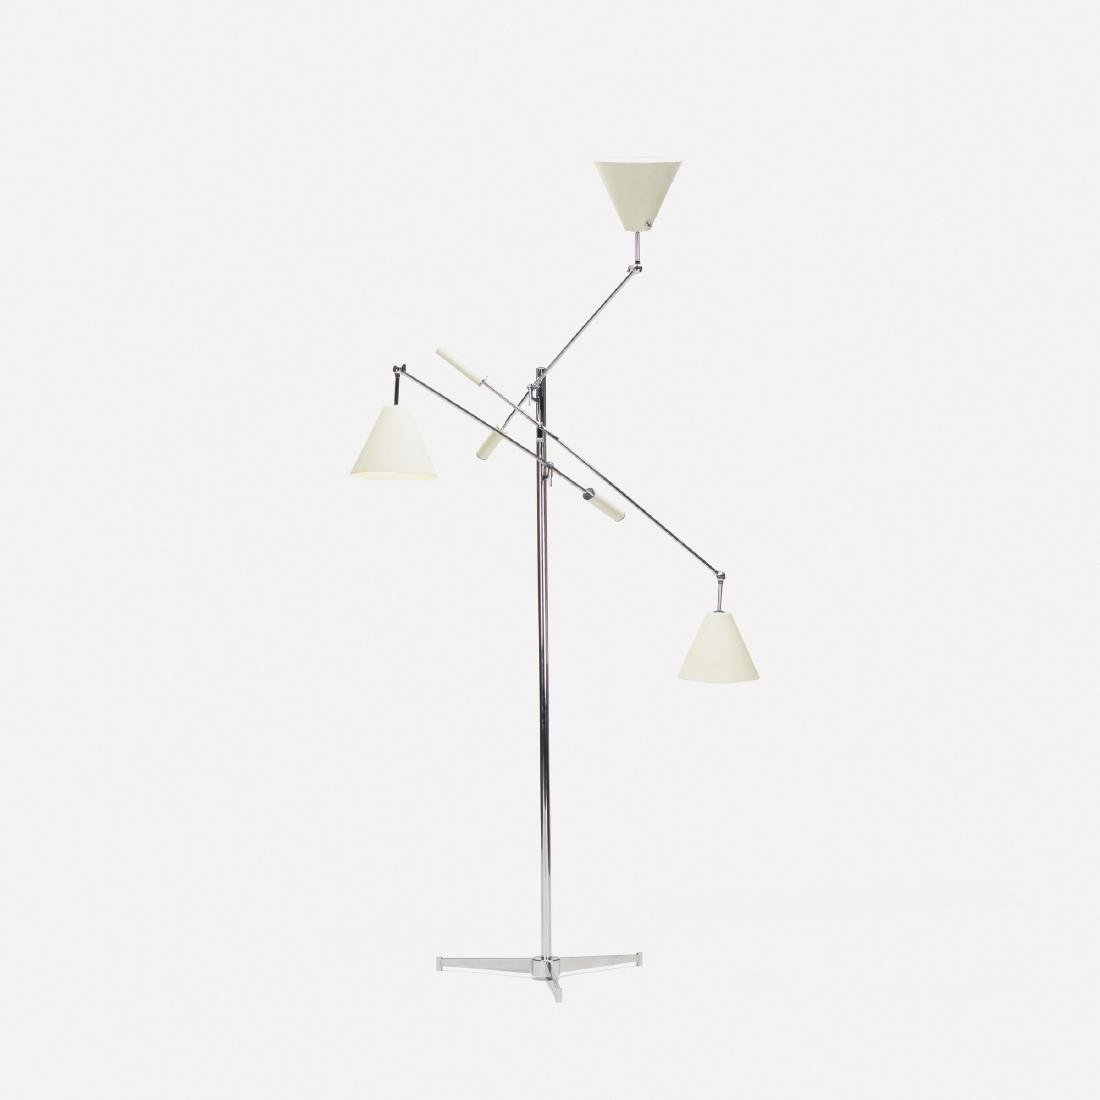 Angelo Lelii, Triennale floor lamp, model 12128